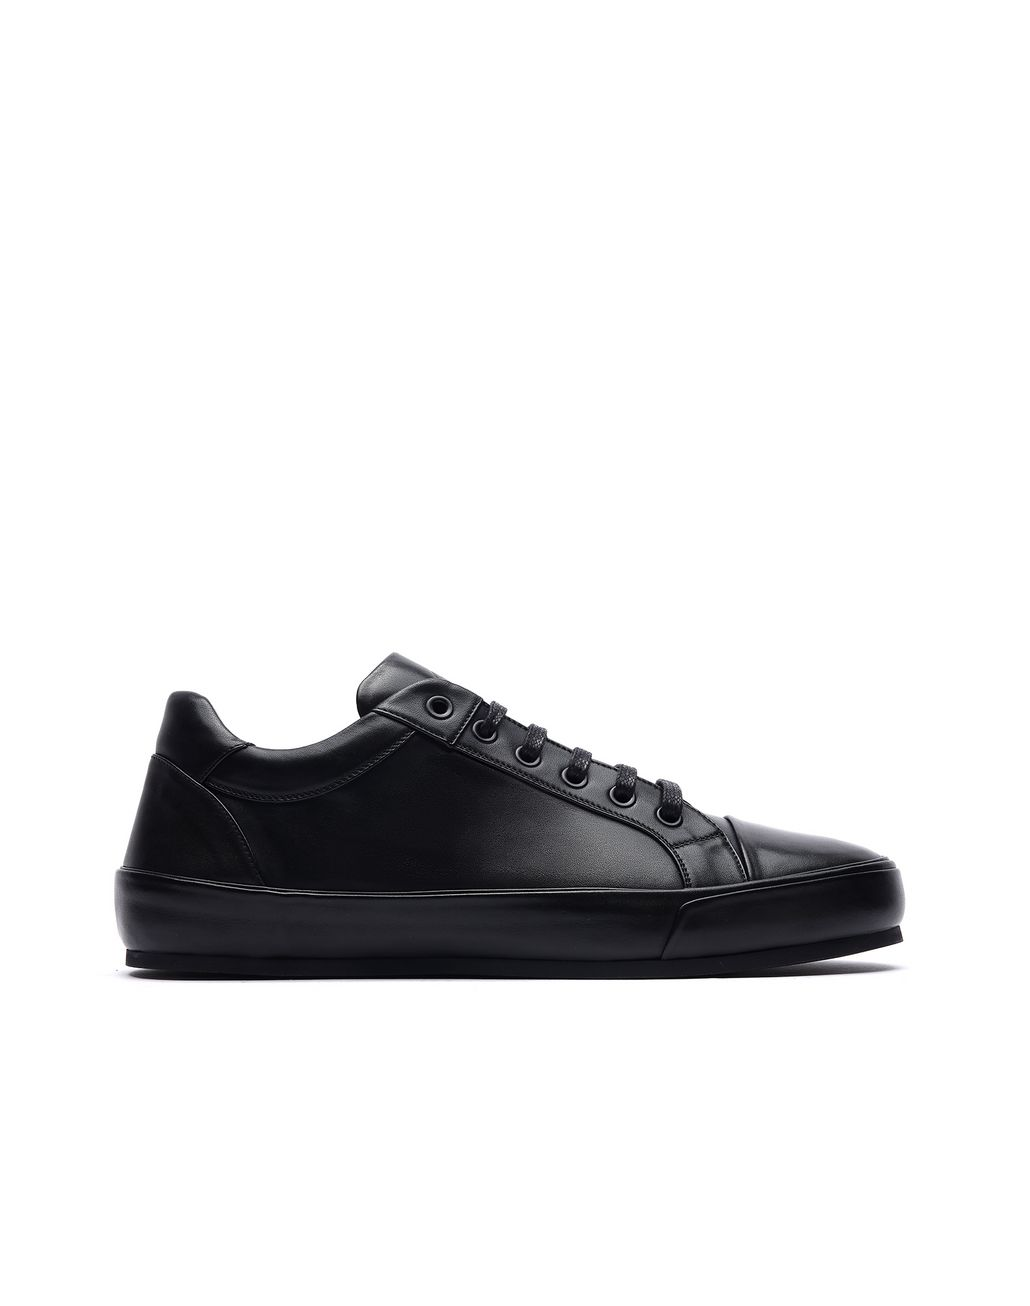 BRIONI Black Sneaker Sneakers Man f